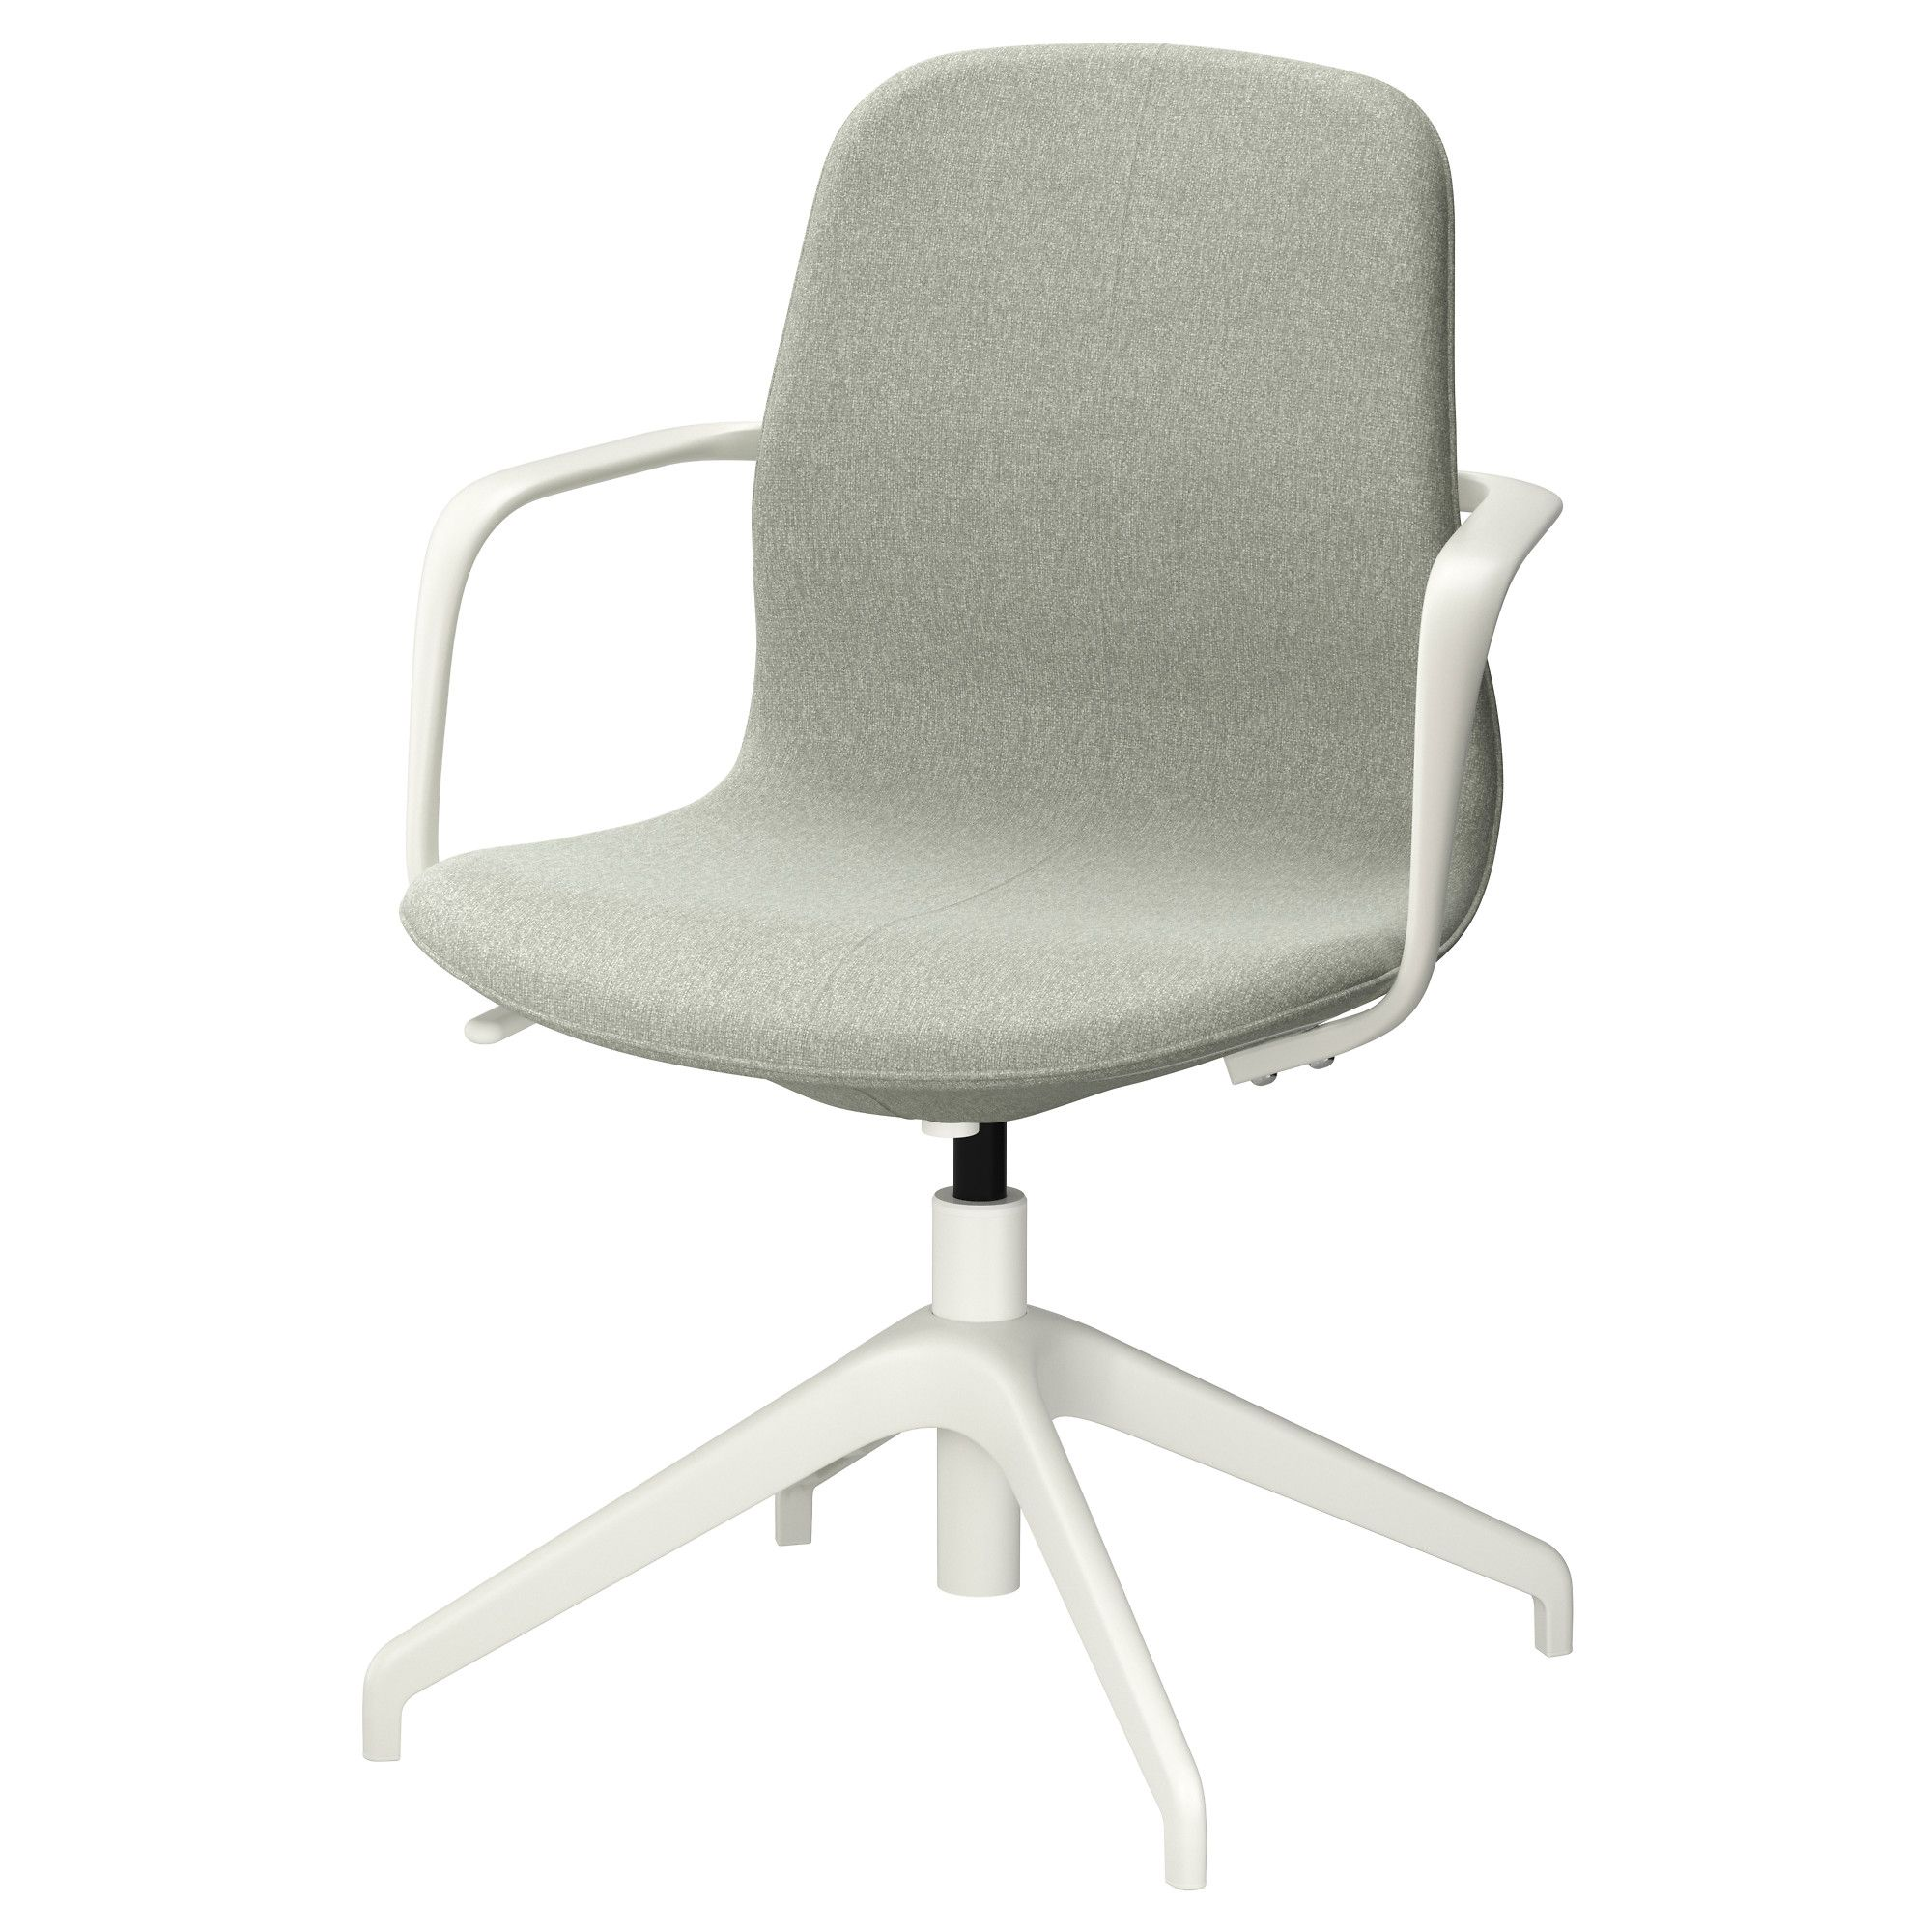 ikea ergonomic office chair. IKEA LÅNGFJÄLL Swivel Chair Gunnared Light Green/white An Ergonomic Office With Lightly Curved Ikea O